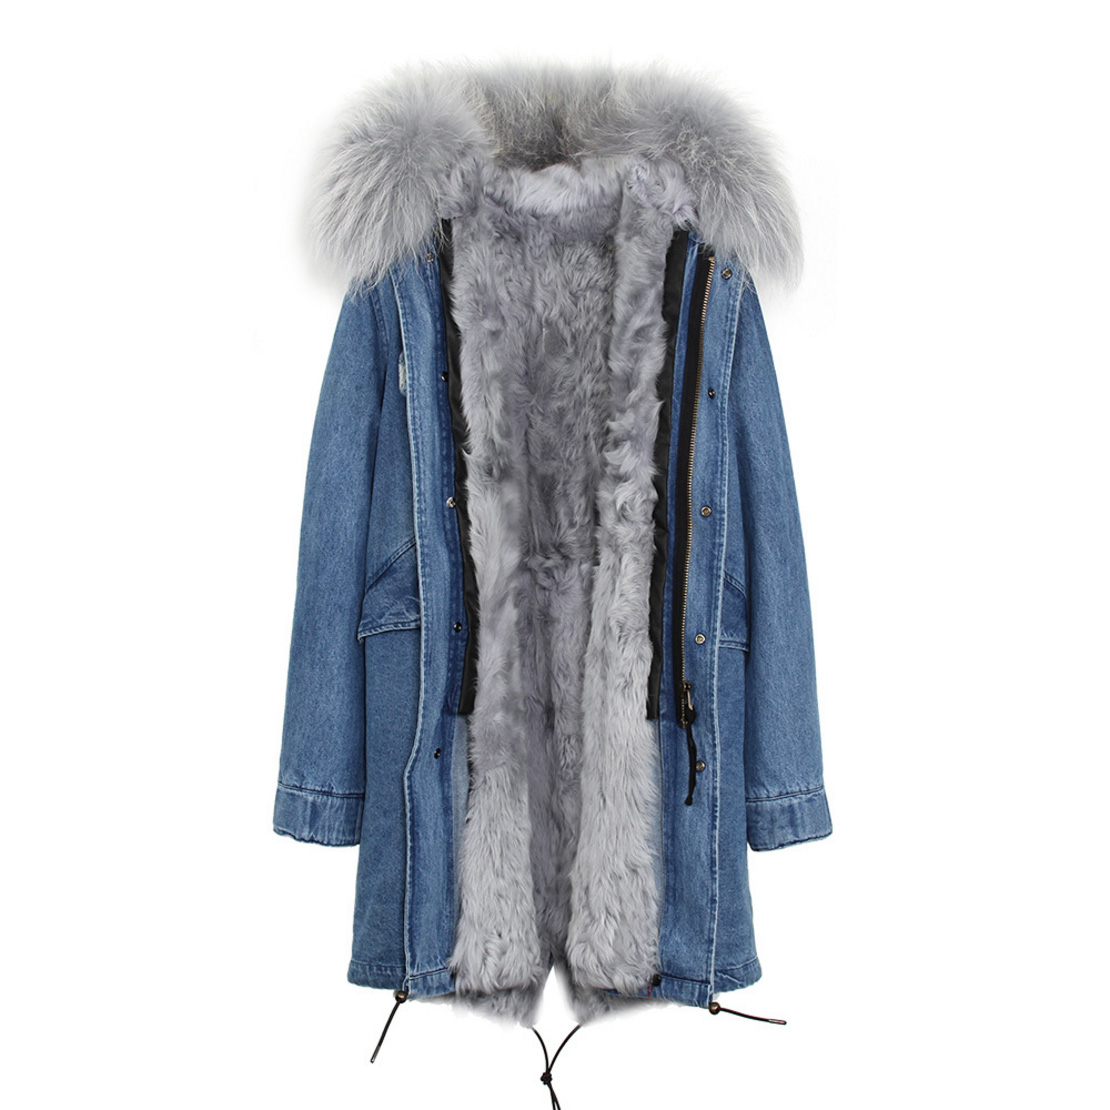 Raccoon Fur Trimmed Hooded Parka with Detachable Lamb Fur Liner 132-11